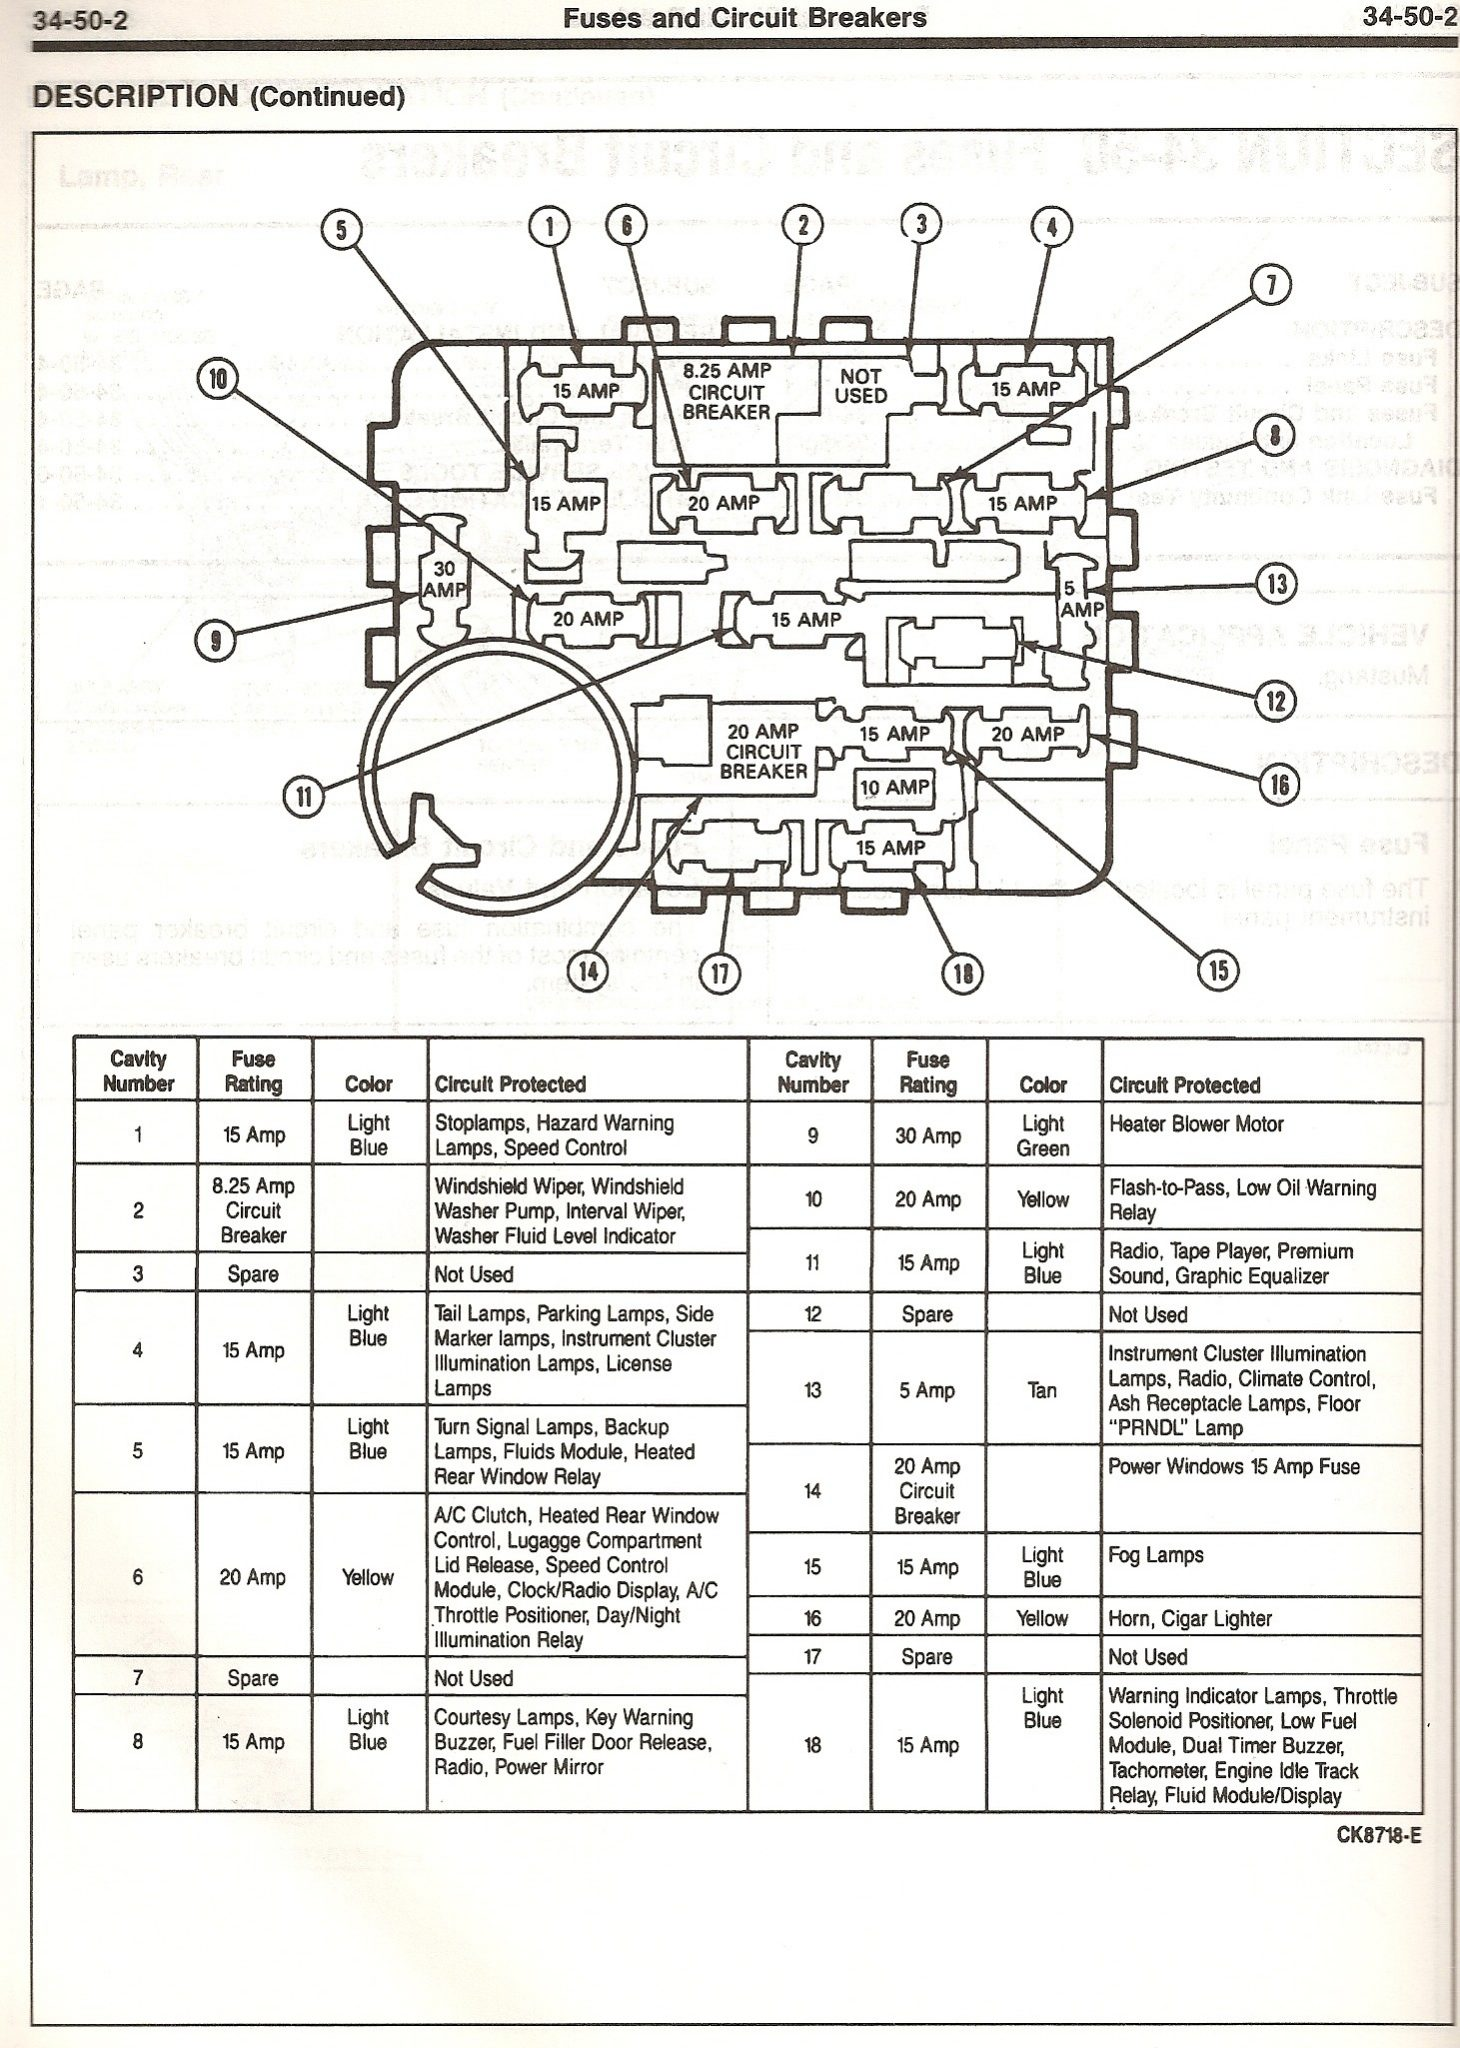 dodge ram fuse box diagram 1998 dodge dakota electrical diagram wirdig 90 dodge ram van fuse box diagram image wiring diagram